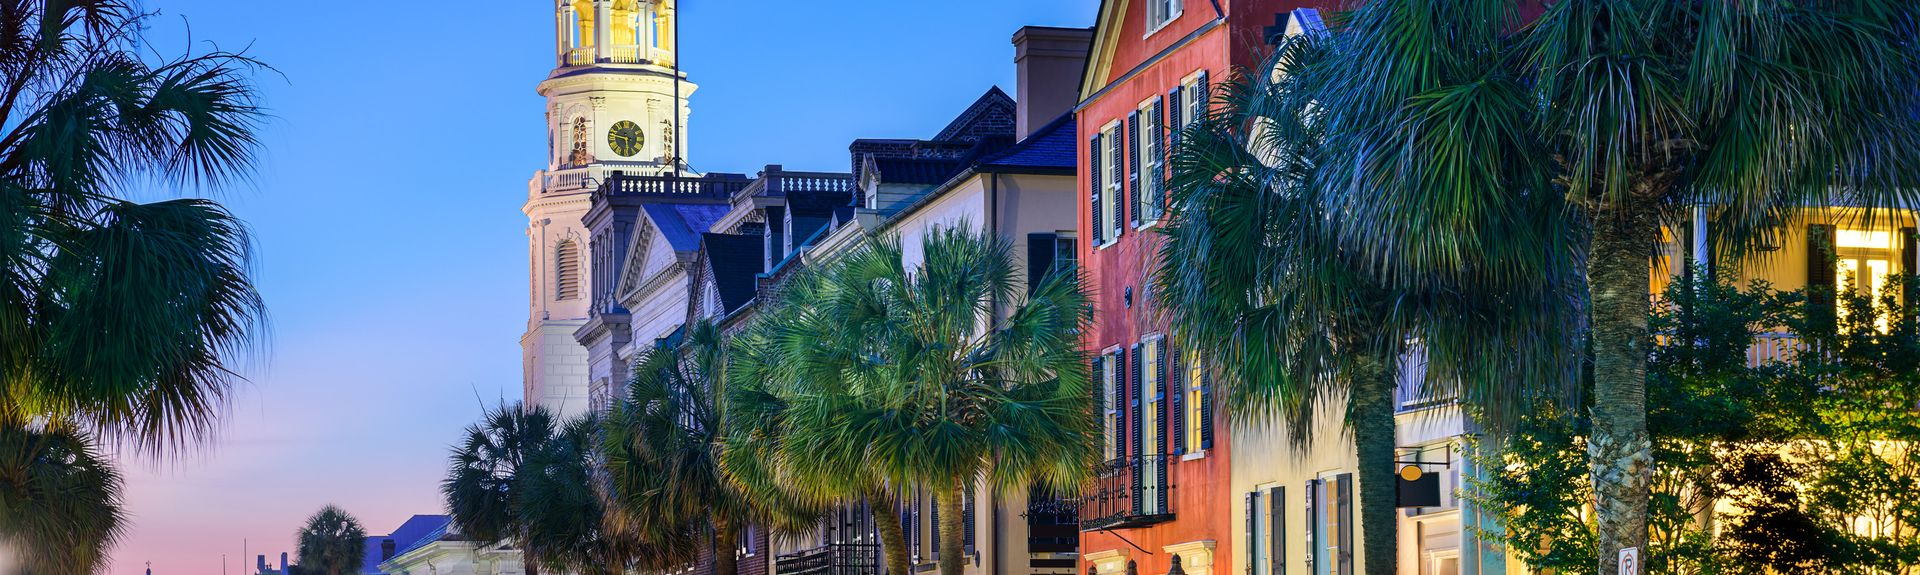 Charleston Historic District, Charleston, Etelä-Carolina, Yhdysvallat